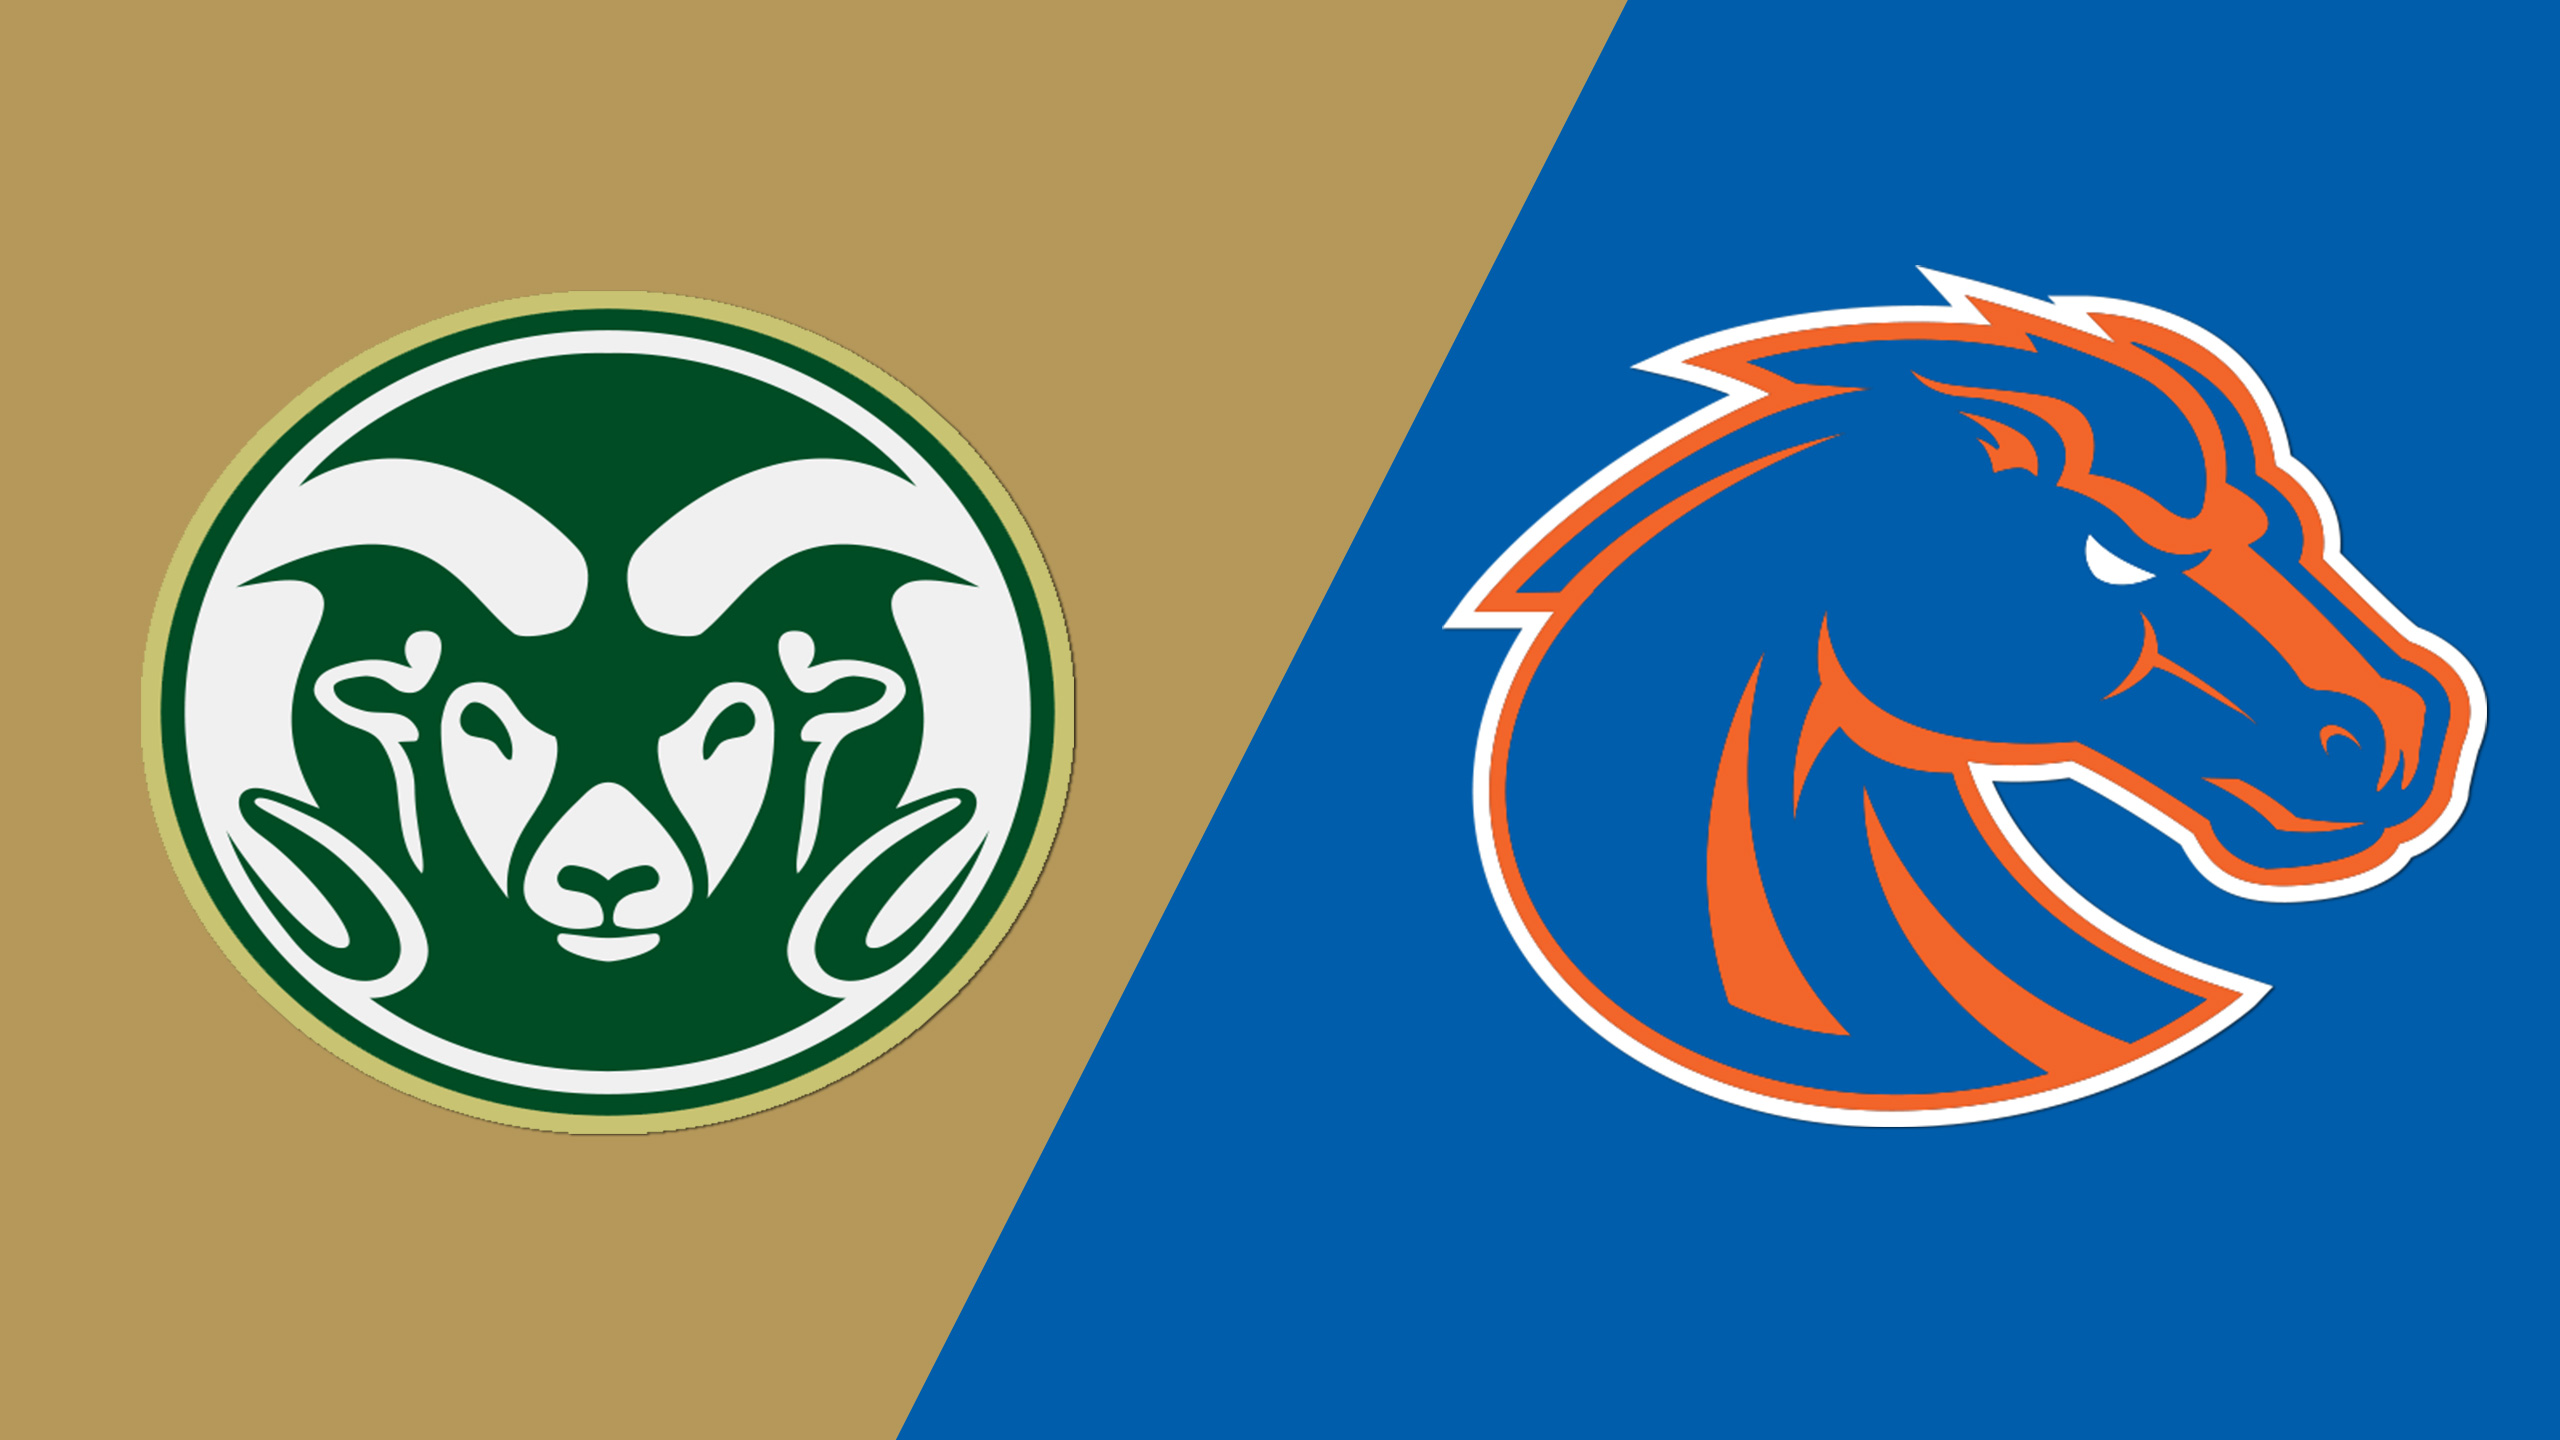 Colorado State vs. Boise State (Football)